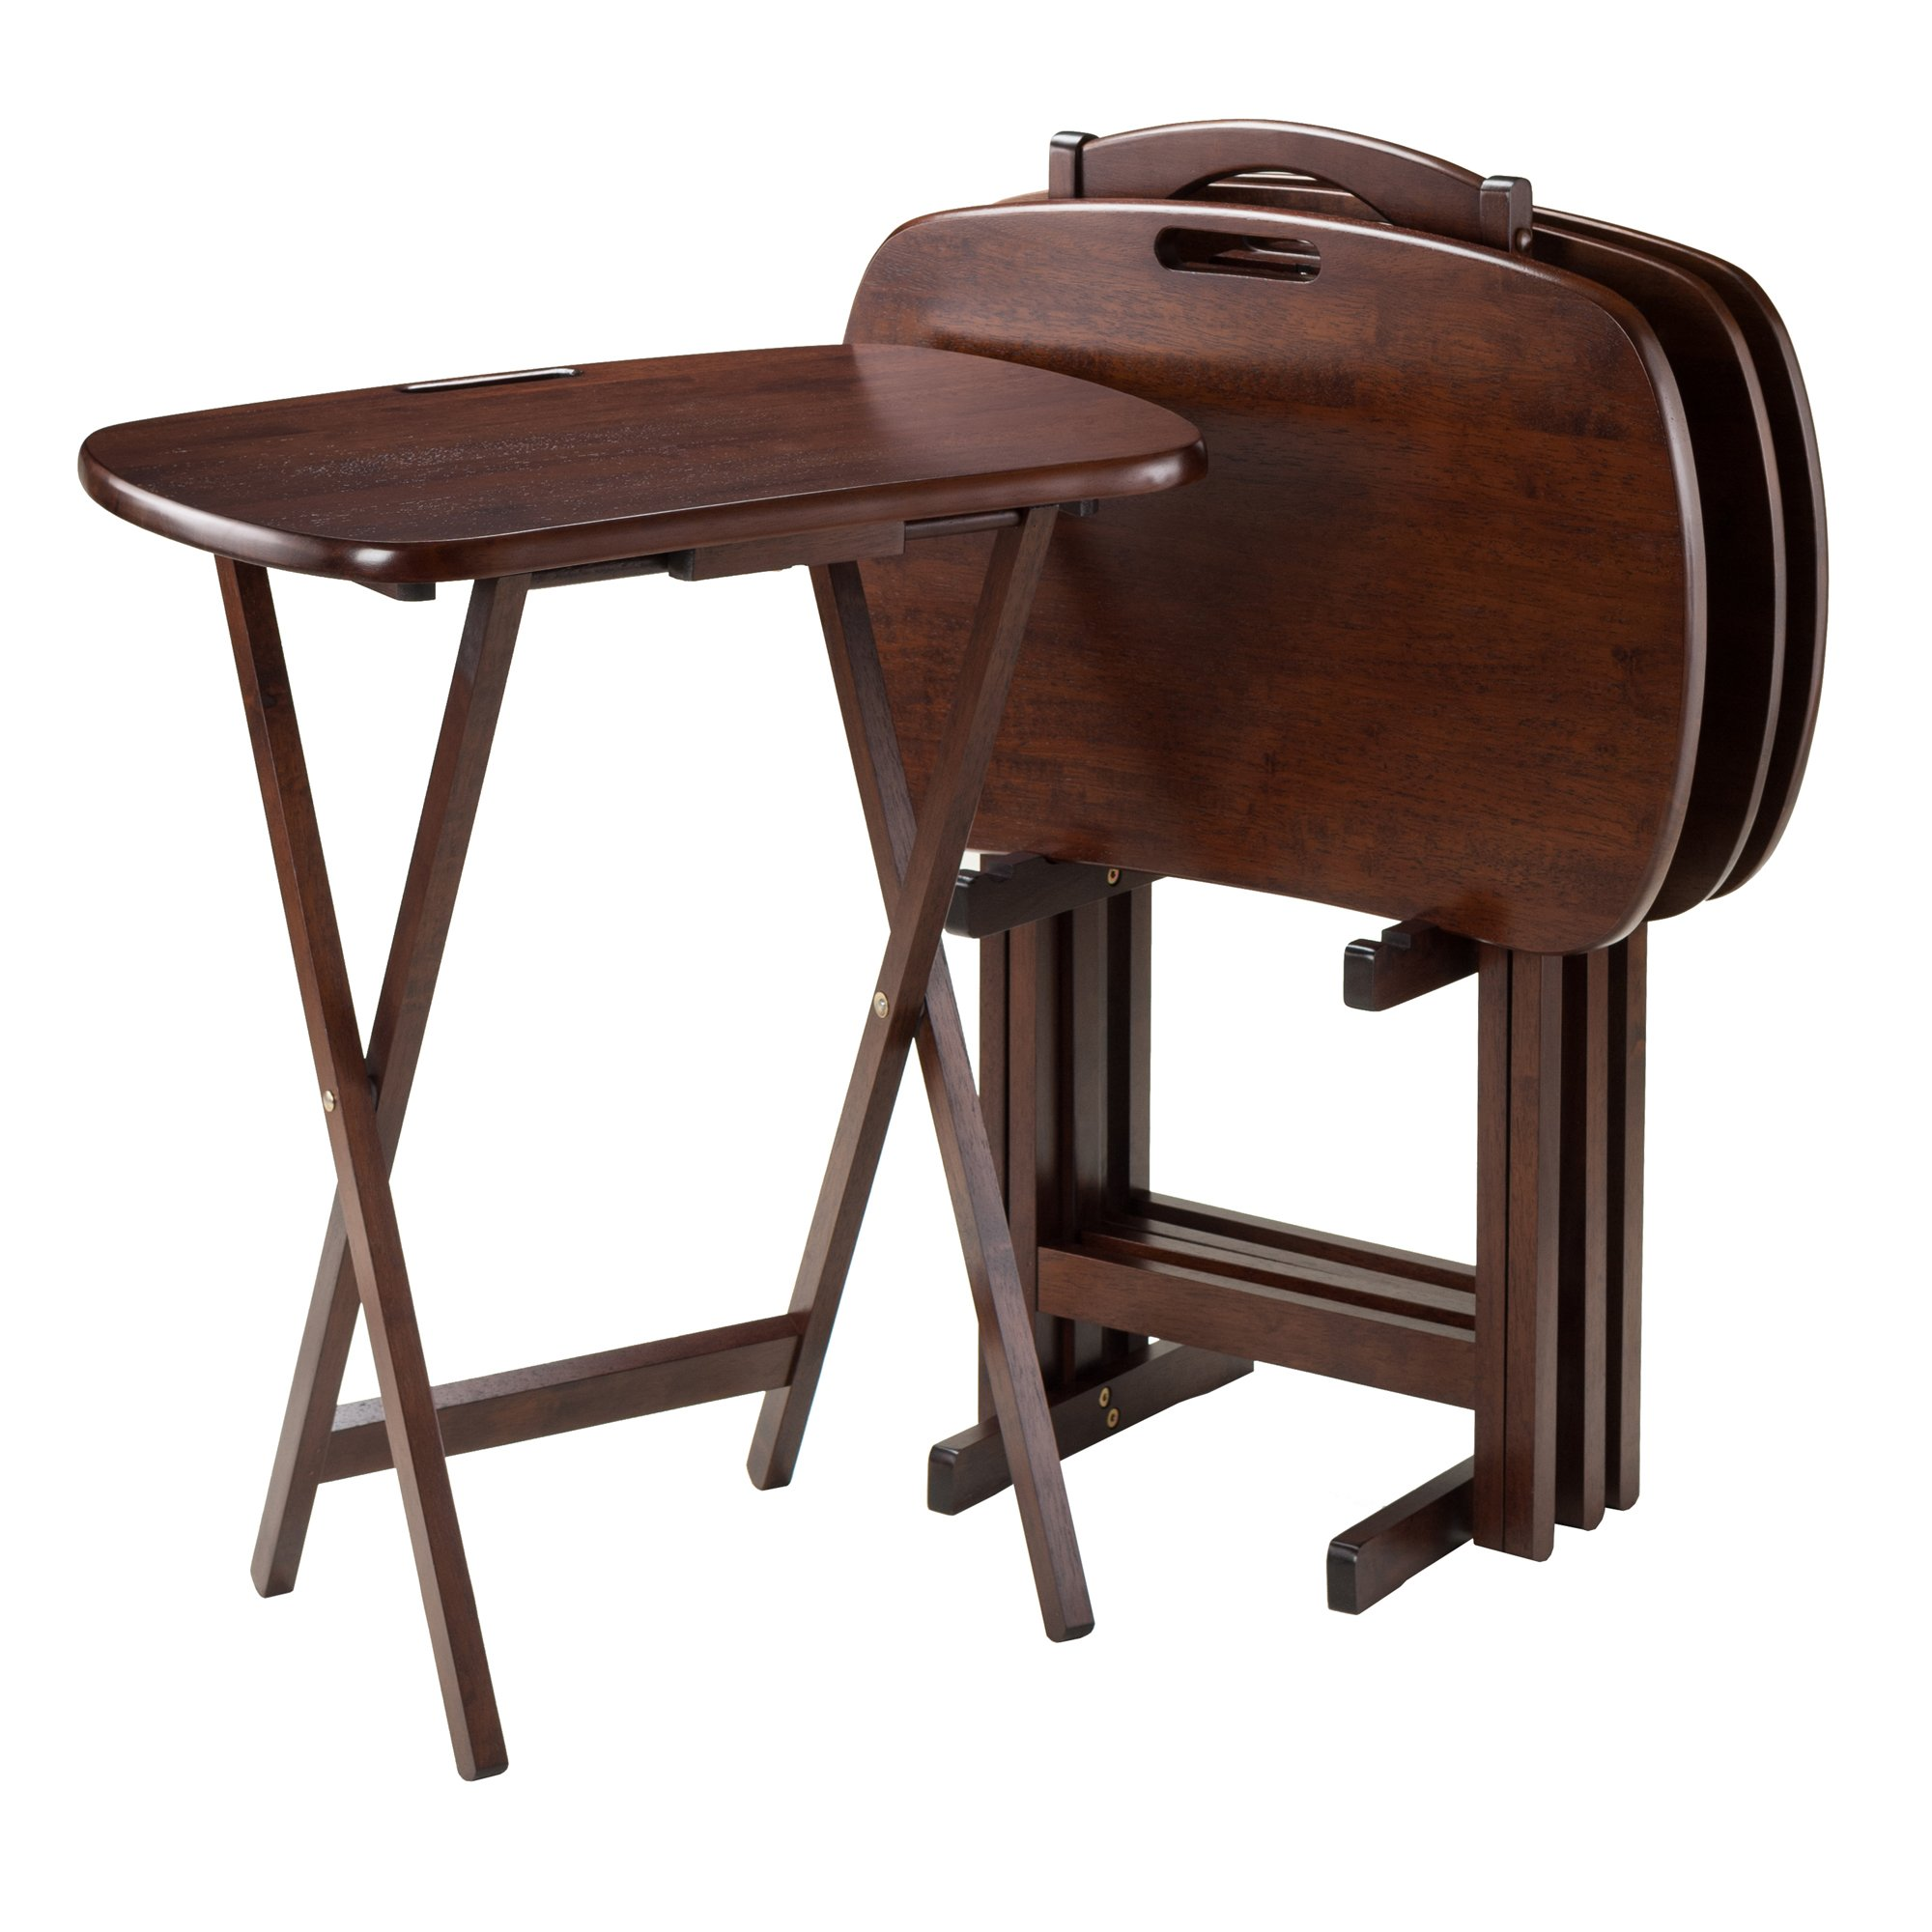 Winsome Lucca Snack Table, 22.83″ W x 25.79″ H x 15.67″ D, Brown